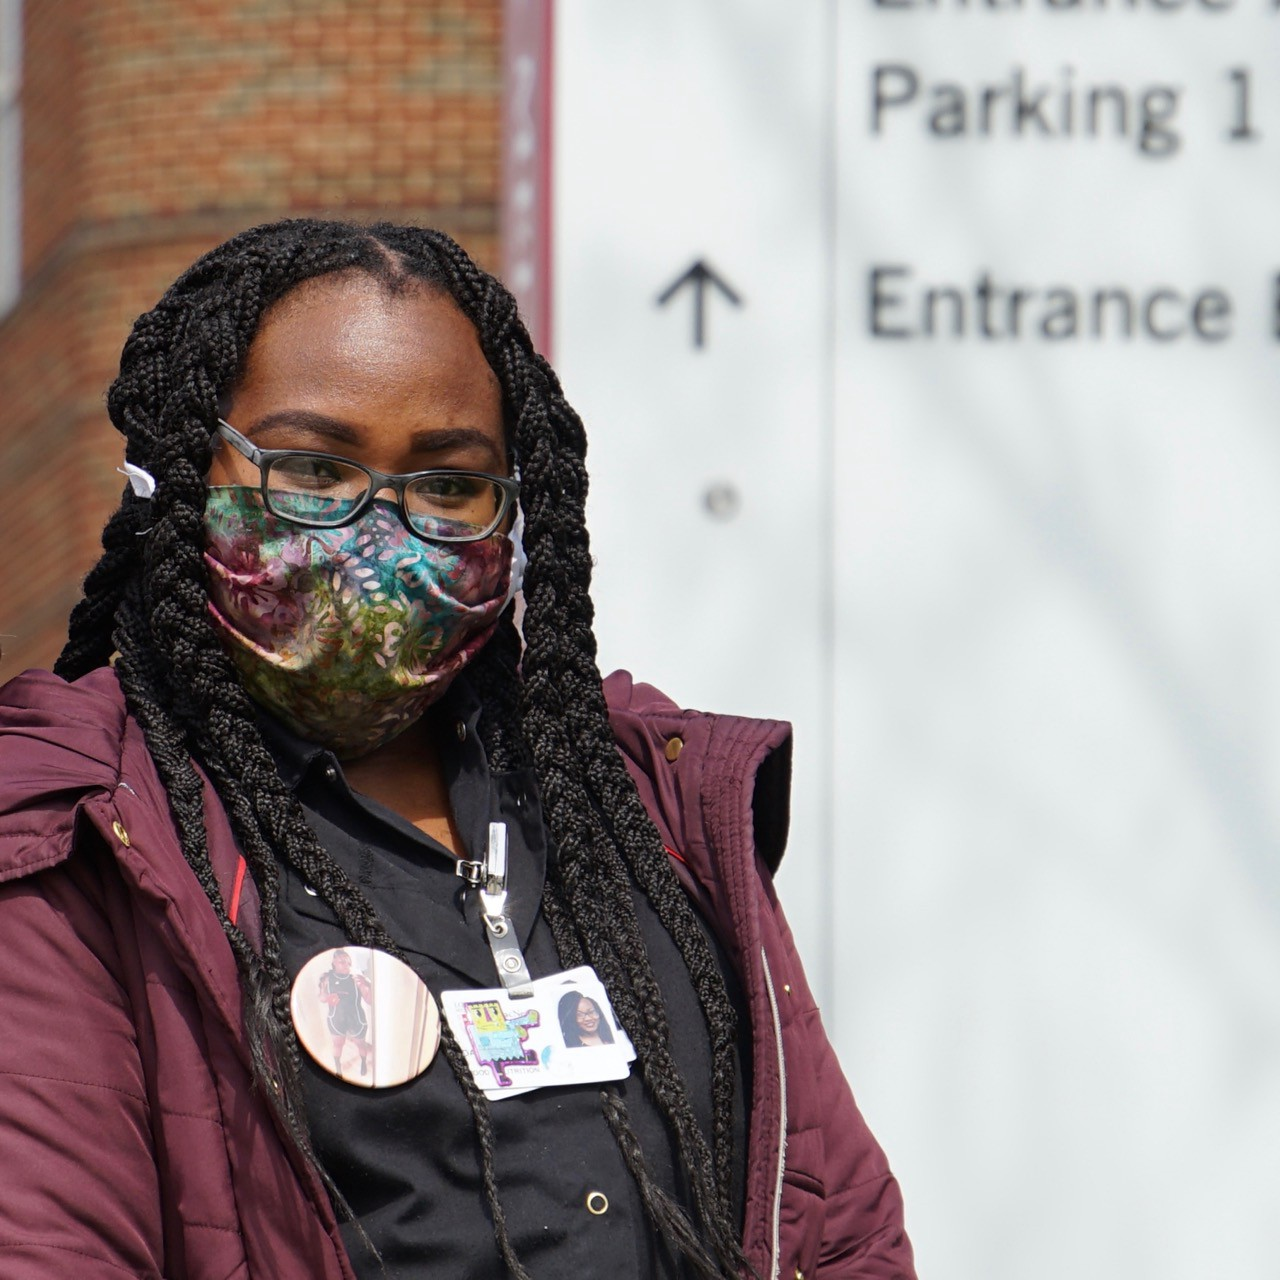 A hospital worker stands in front of the parking lot sign outsider her workplace.